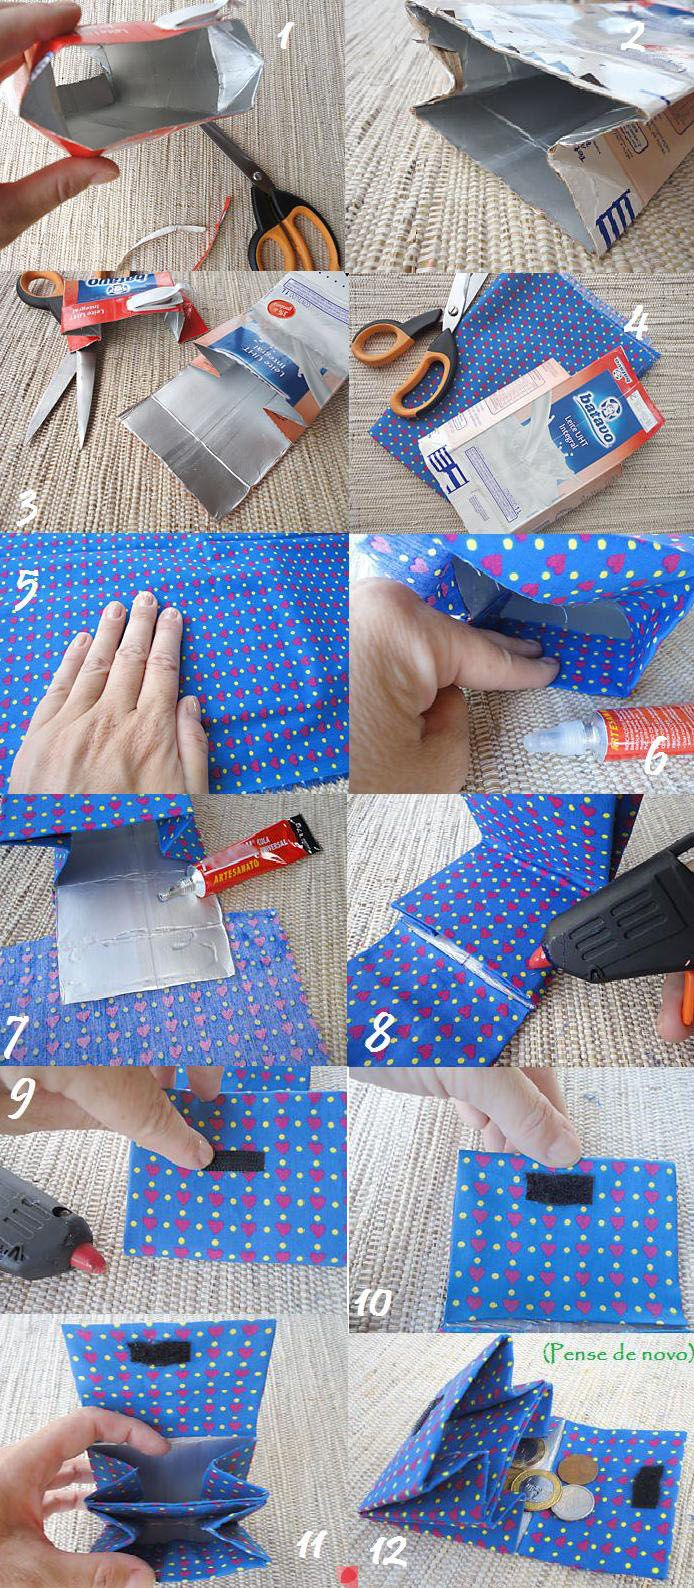 Wallet made from tetra pack - upcycling - something for older kids maybe?